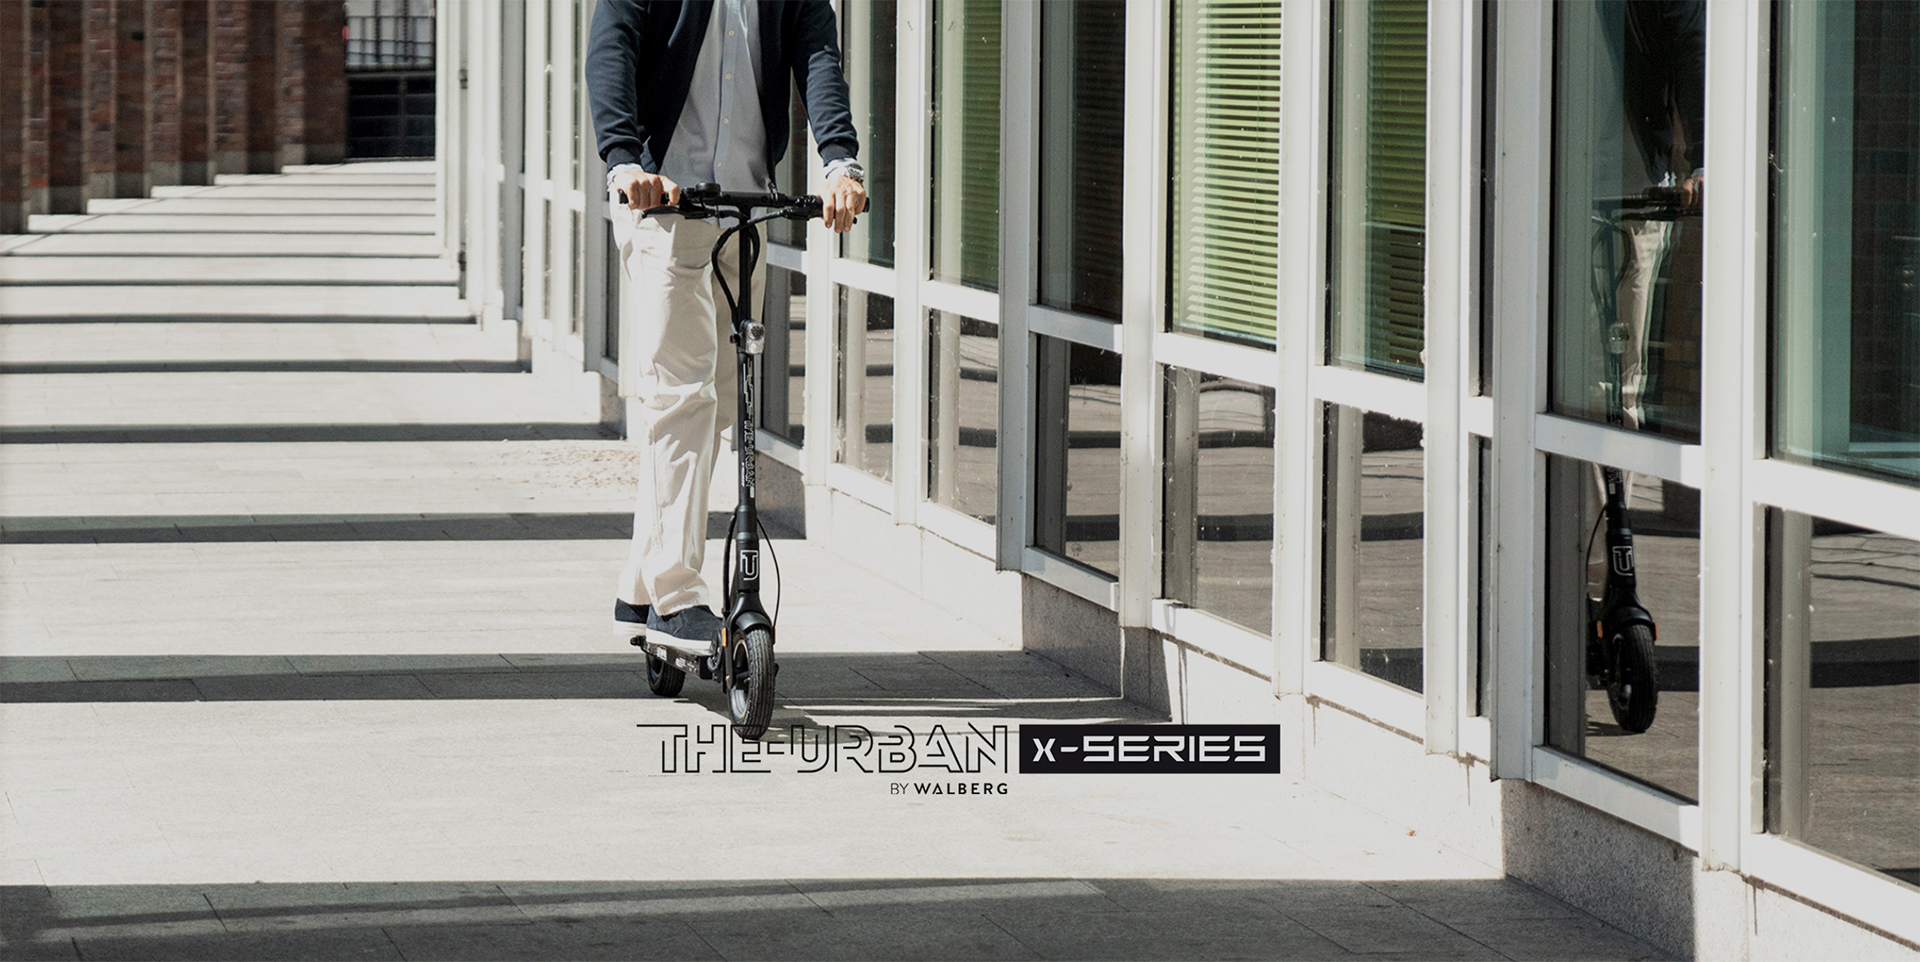 THE-URBAN X-SERIES BY WALBERG - E Scooter range - Mi Scooter UK